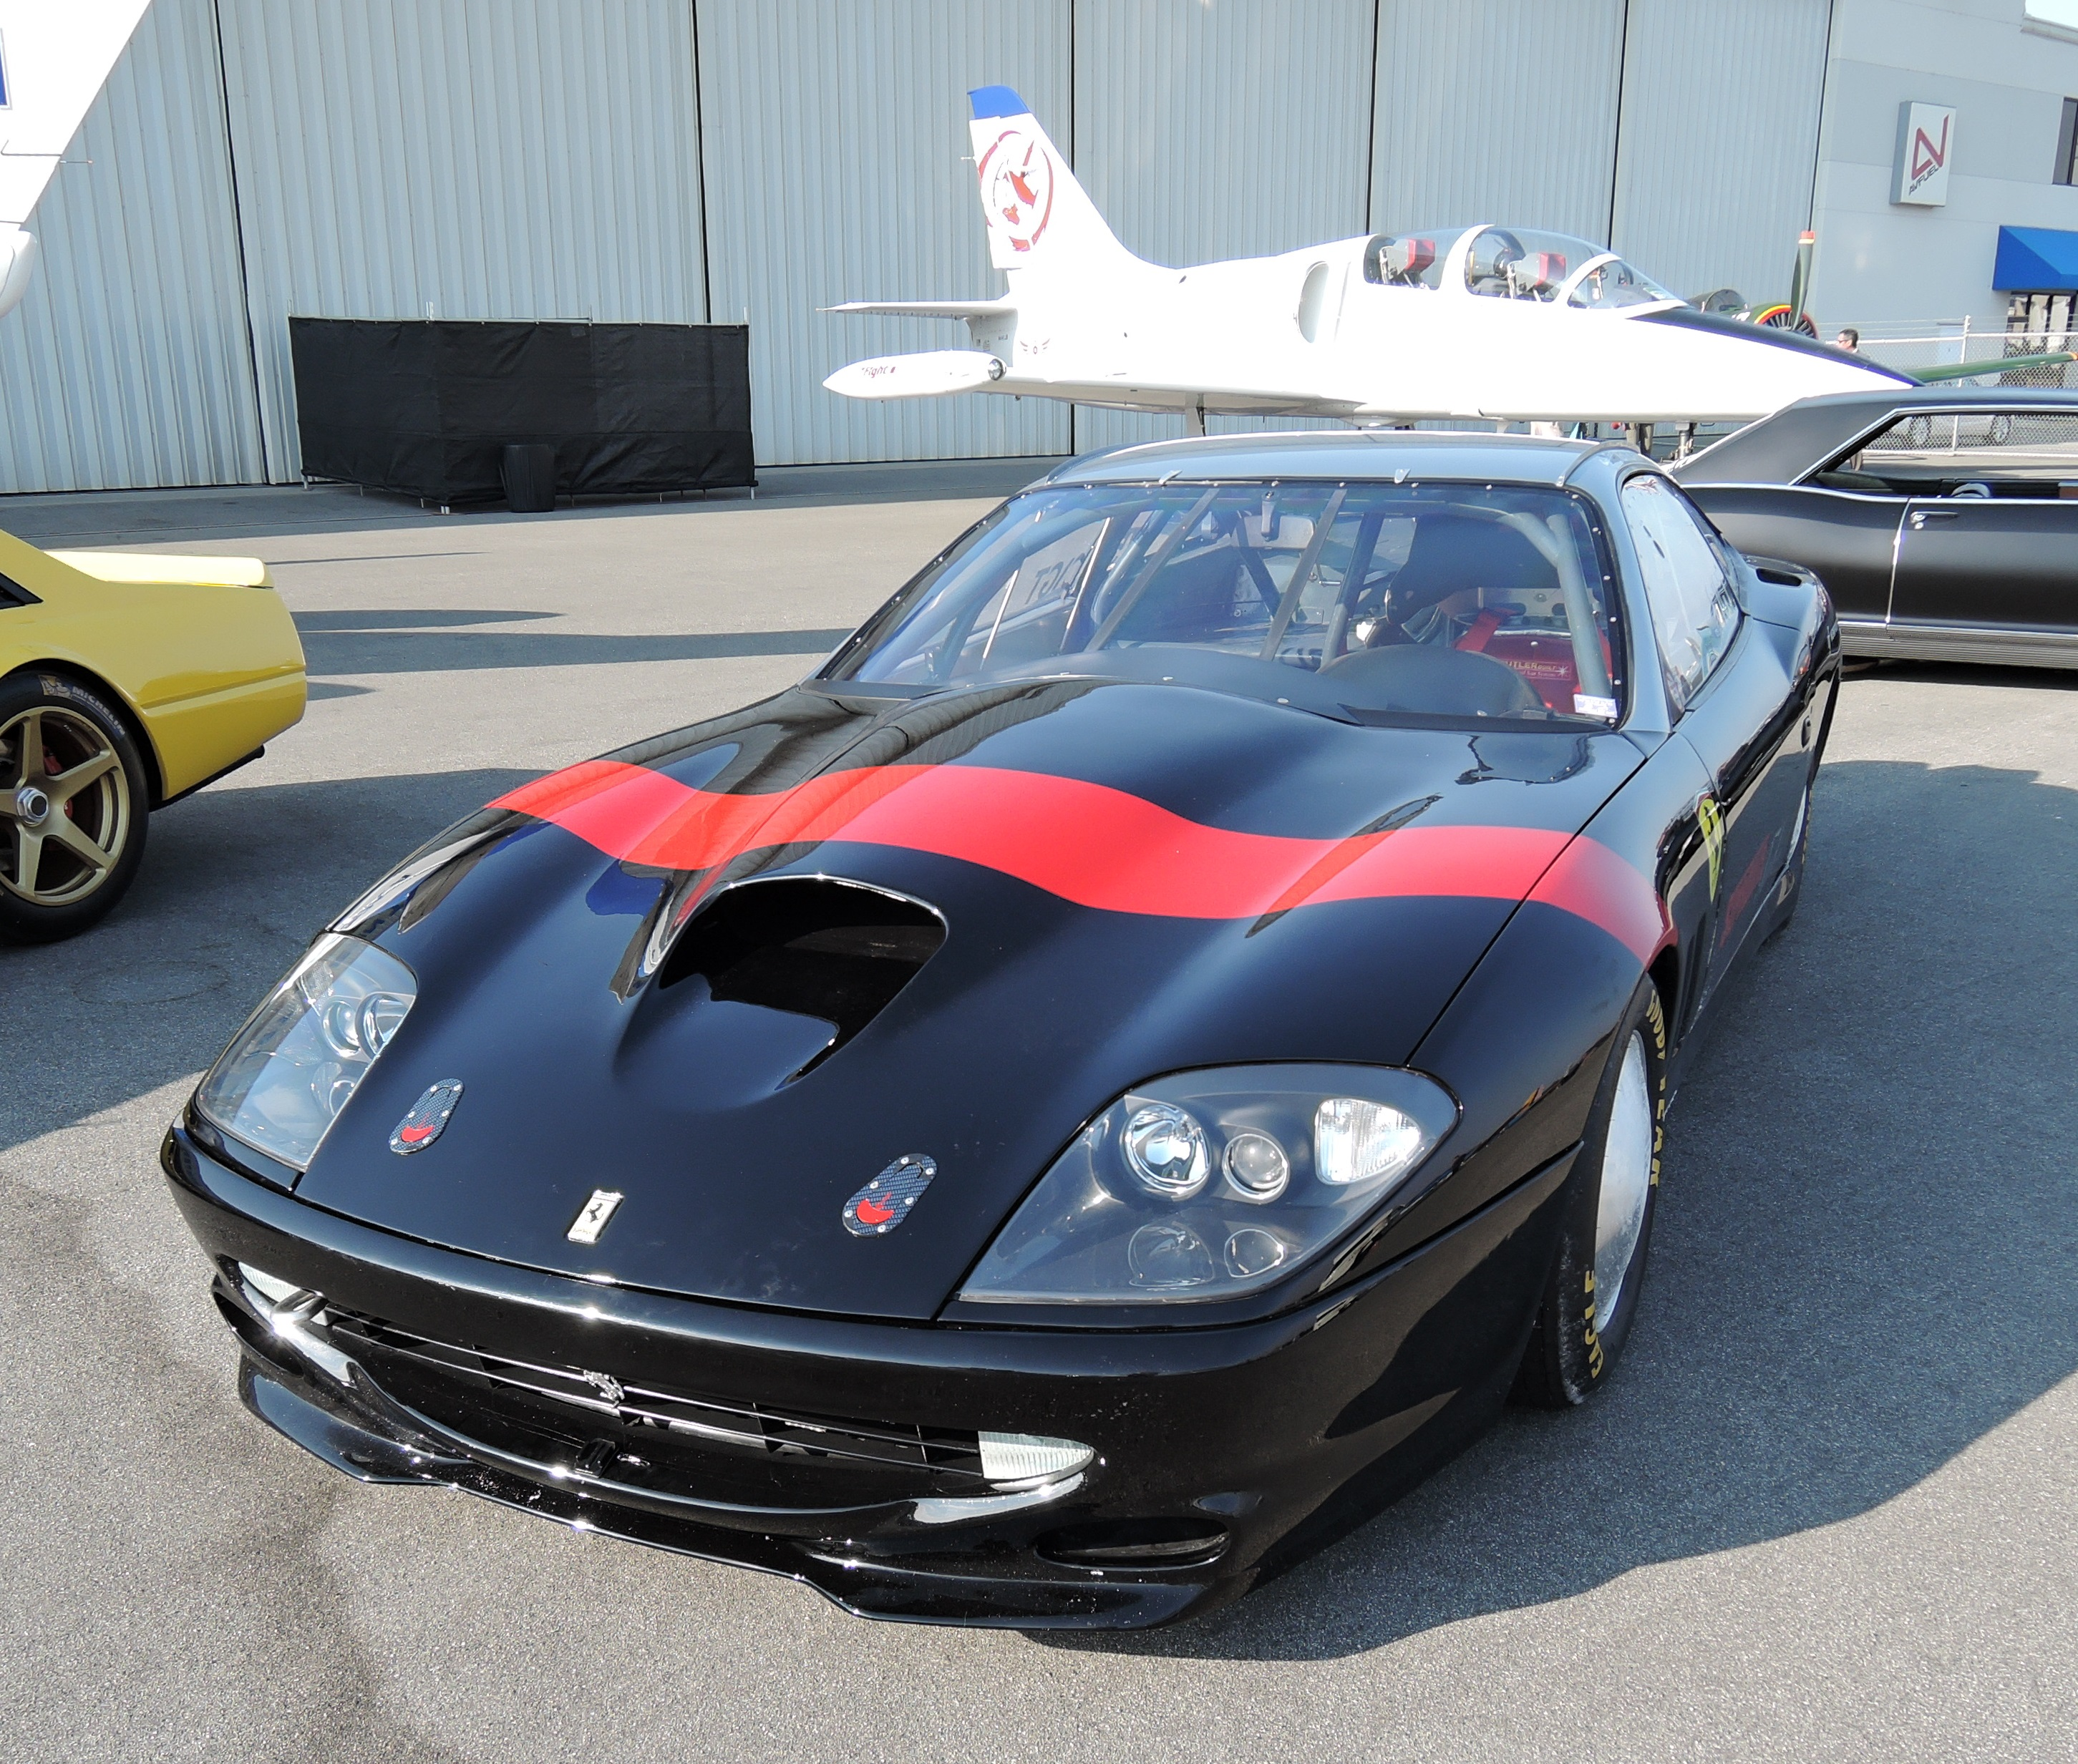 black/red Ken Roath Ferrari 1575 - Monterey Jet Center - McCalls Motorworks Revival